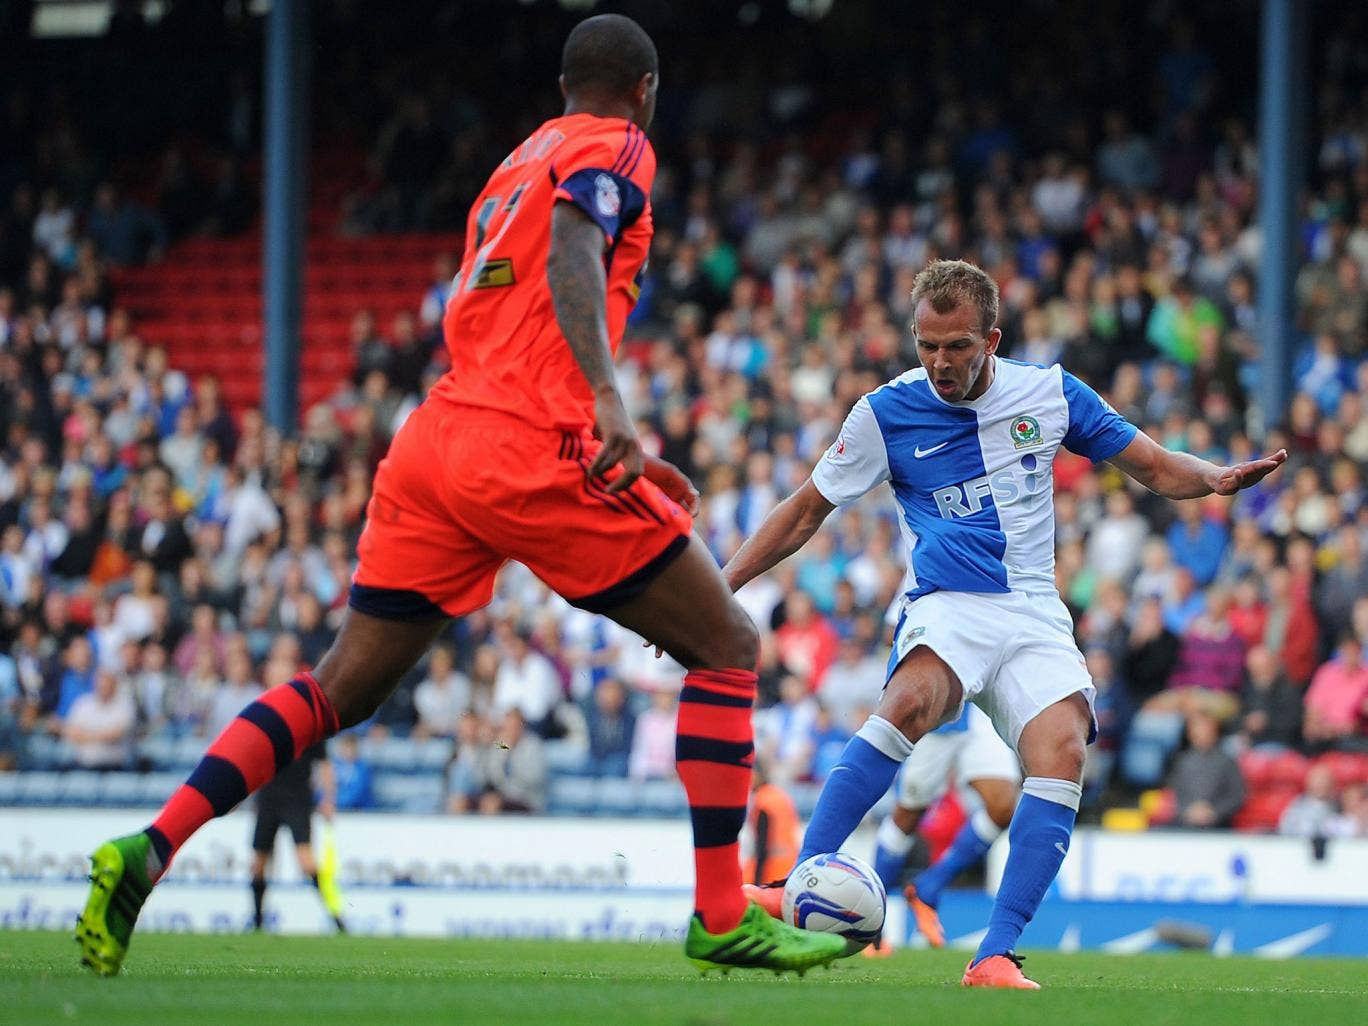 Jordan Rhodes scores the first of his two goals on Saturday